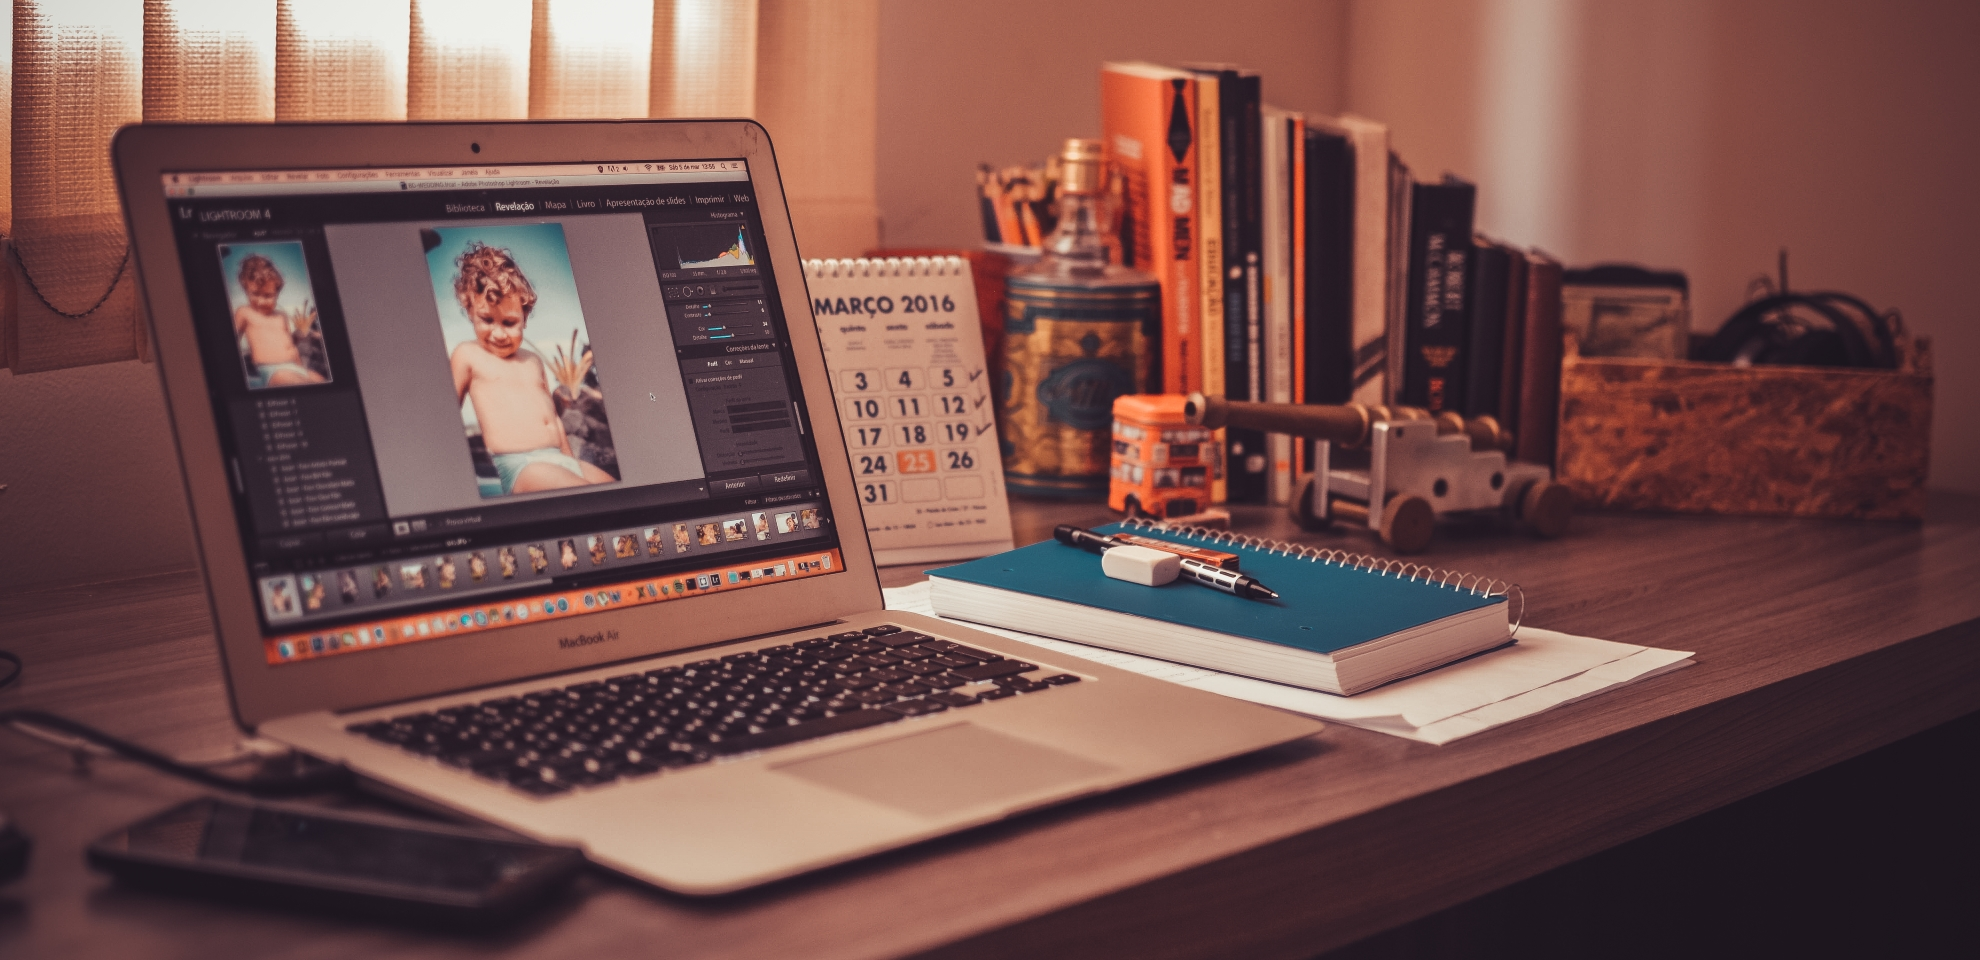 10 Free Online Photo Editors for Small Business in 2020